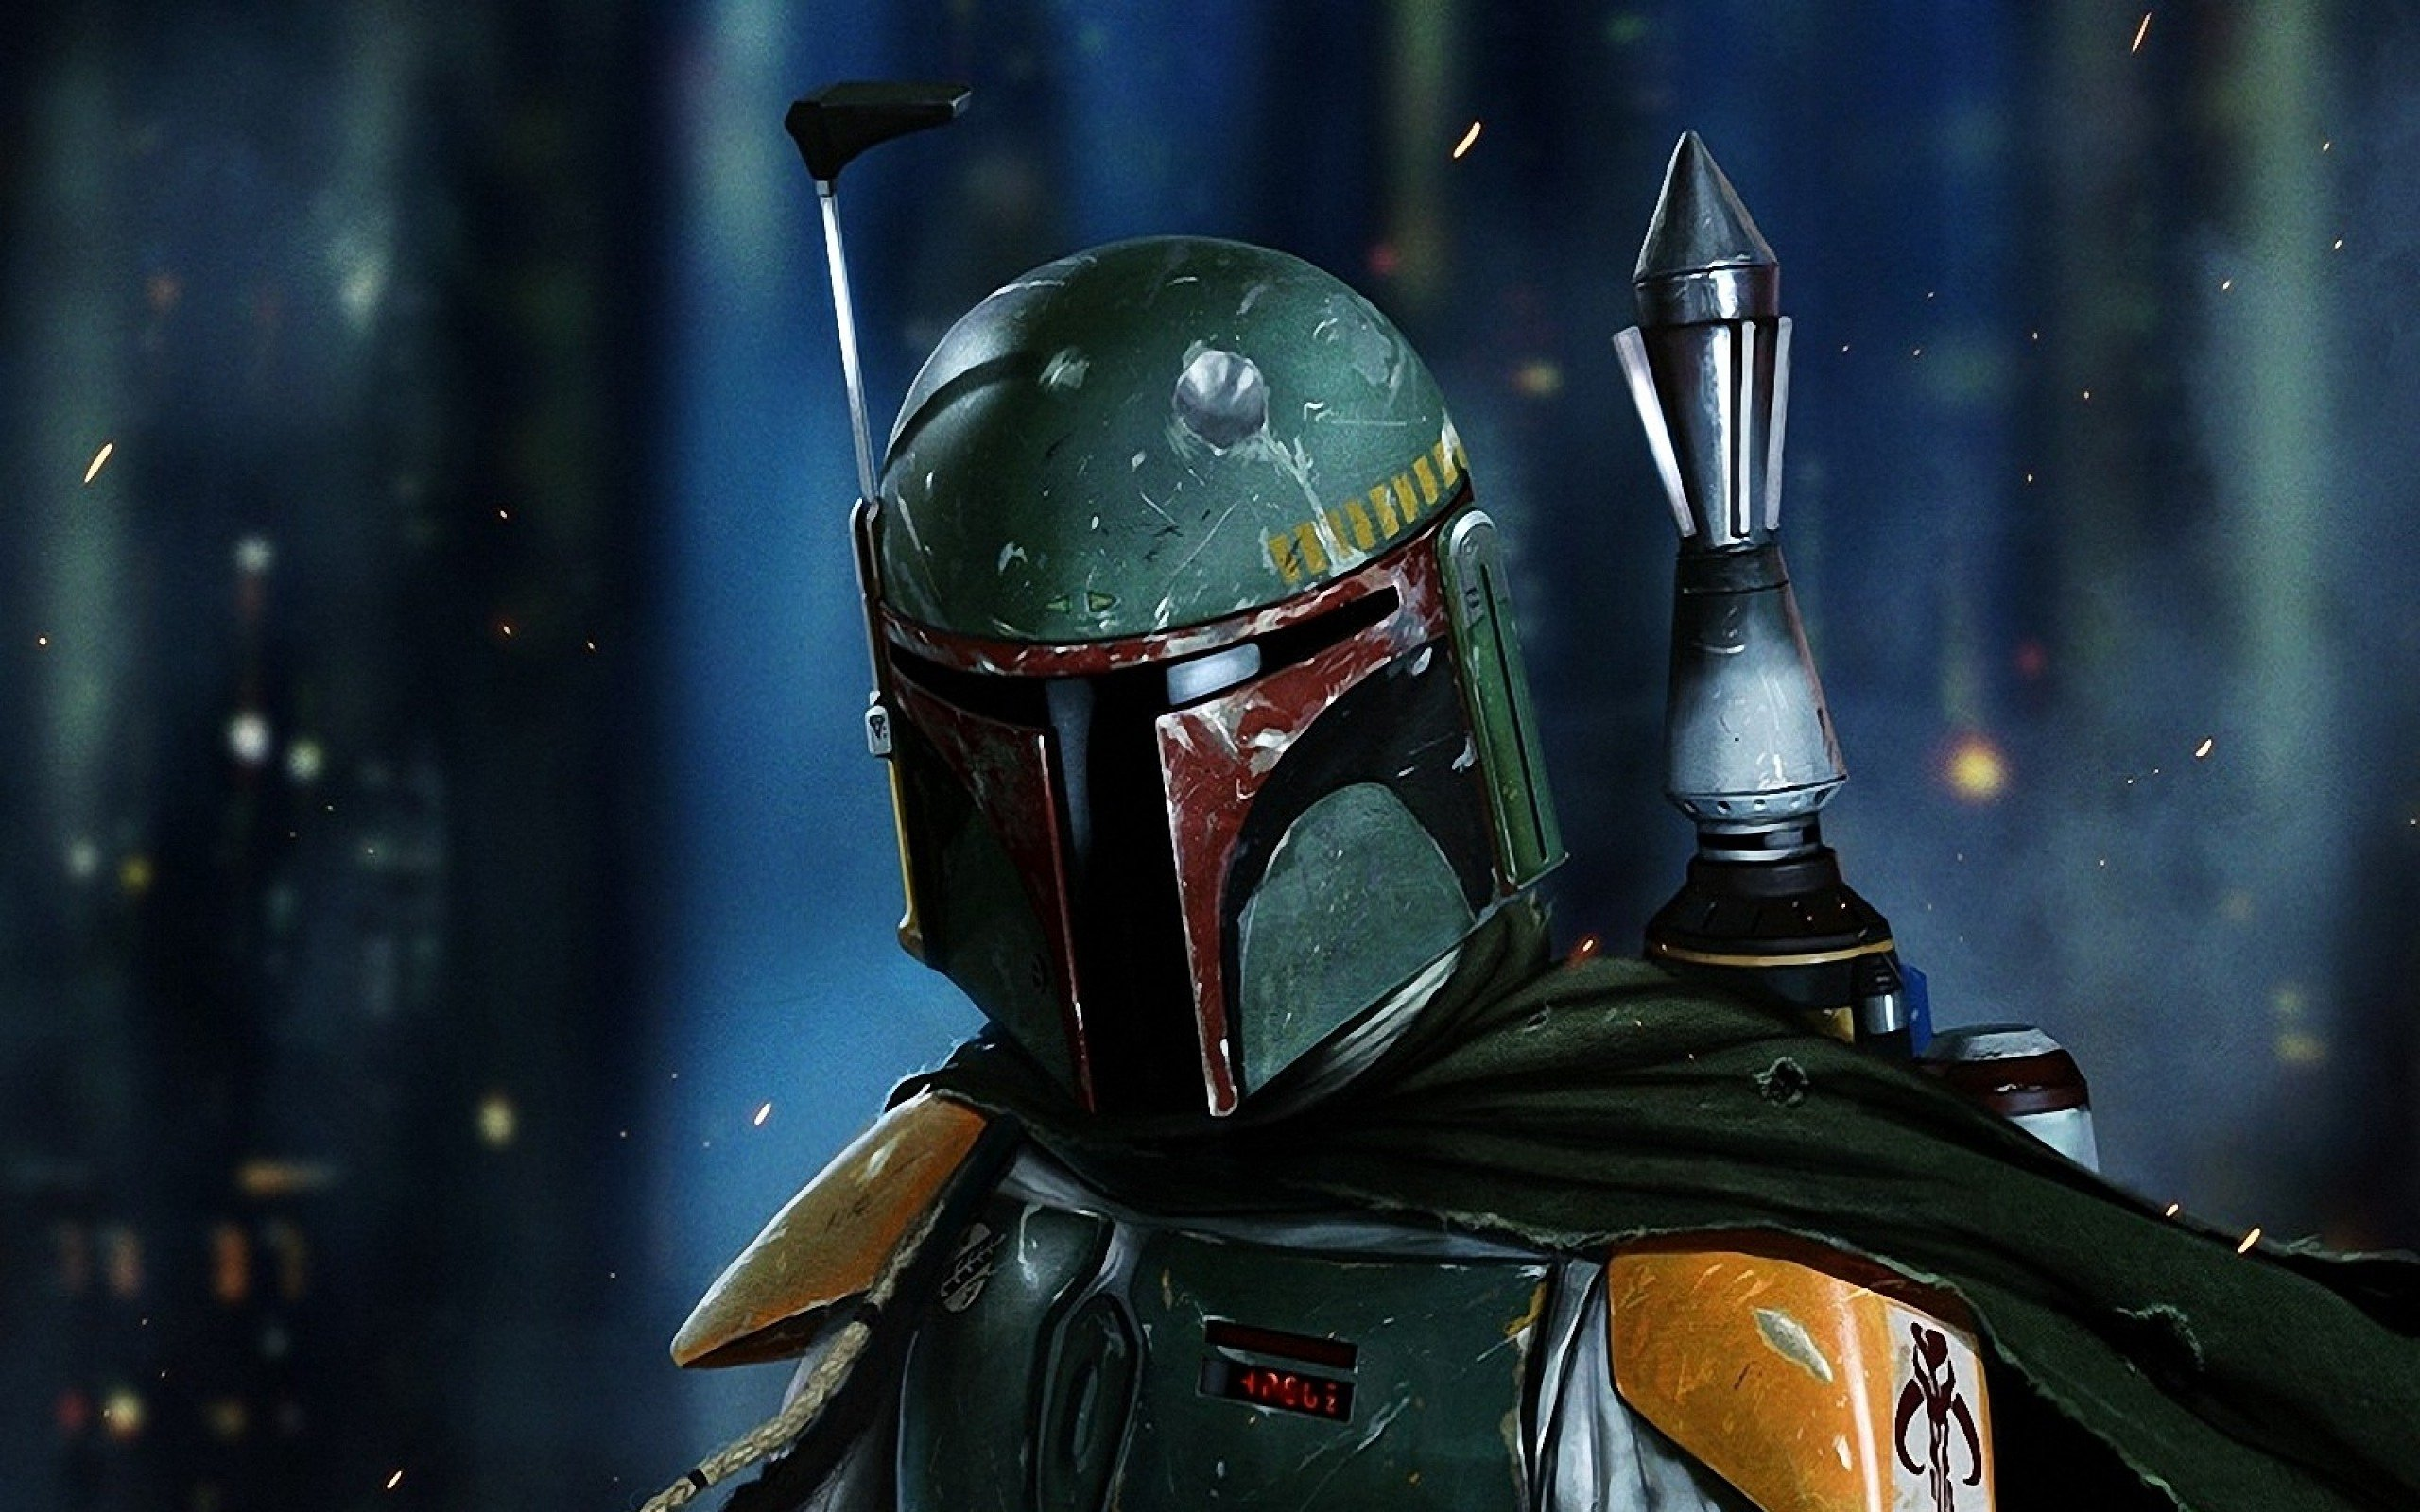 Fox Racing V3 Star Wars Boba Fett Helmet Limited Edition 2560x1600